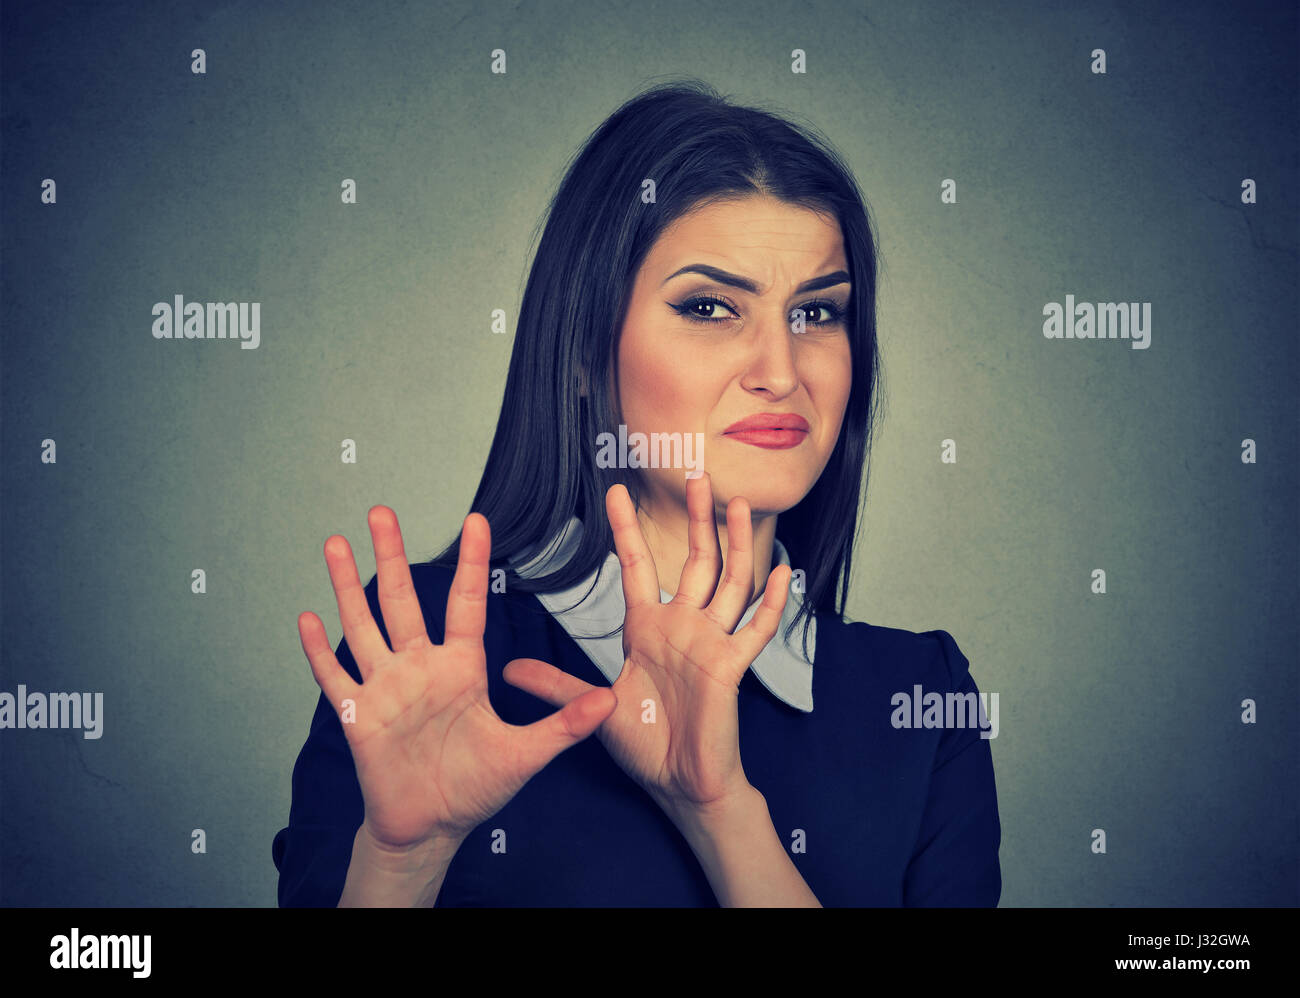 Young woman with disgusted expression dodging something - Stock Image